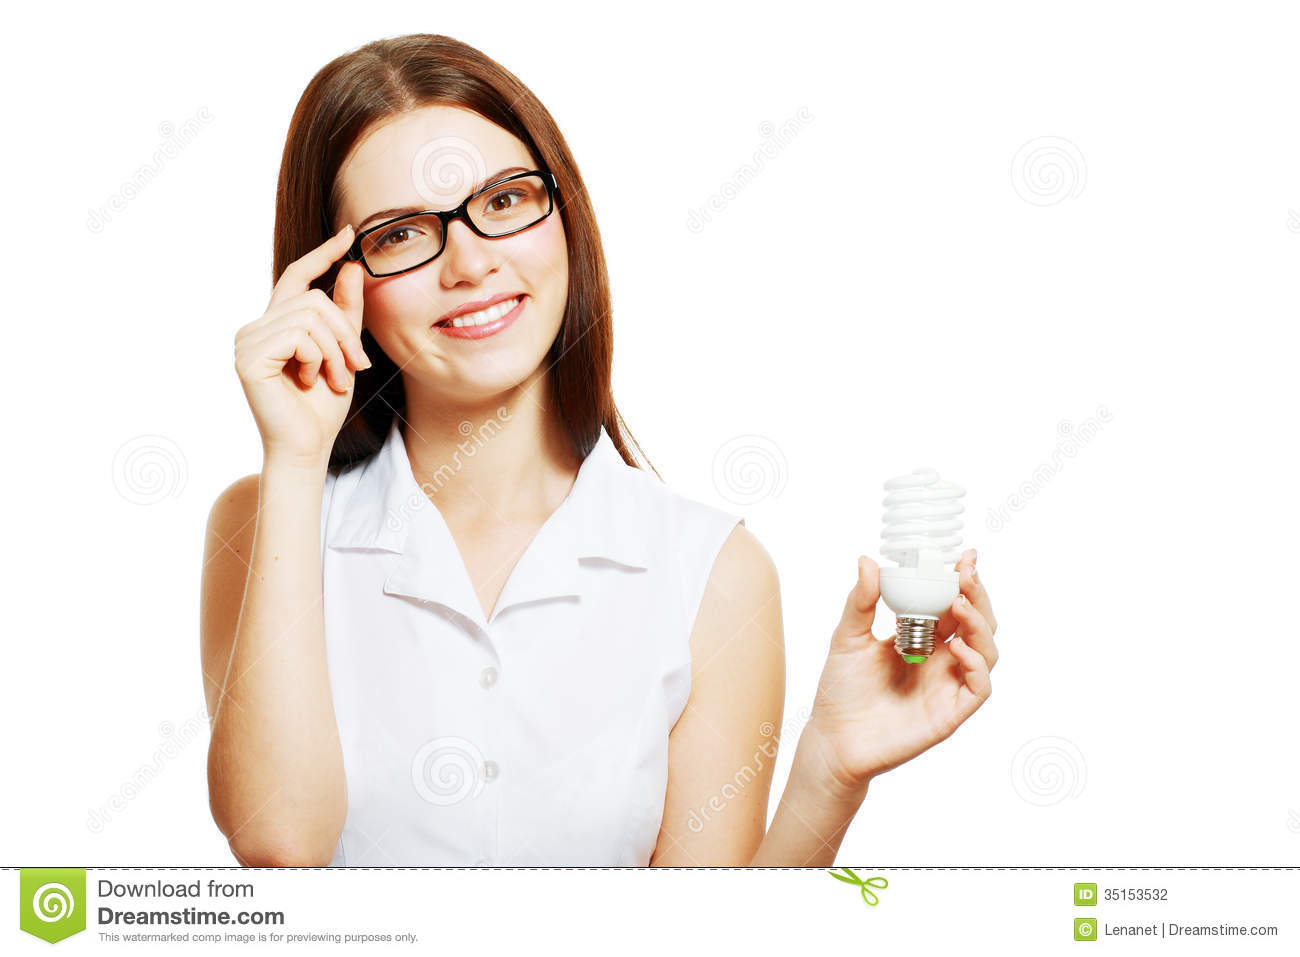 Woman In Glasses Holding Lamp Stock Photo - Image of household ... for Girl Holding Lamp  83fiz